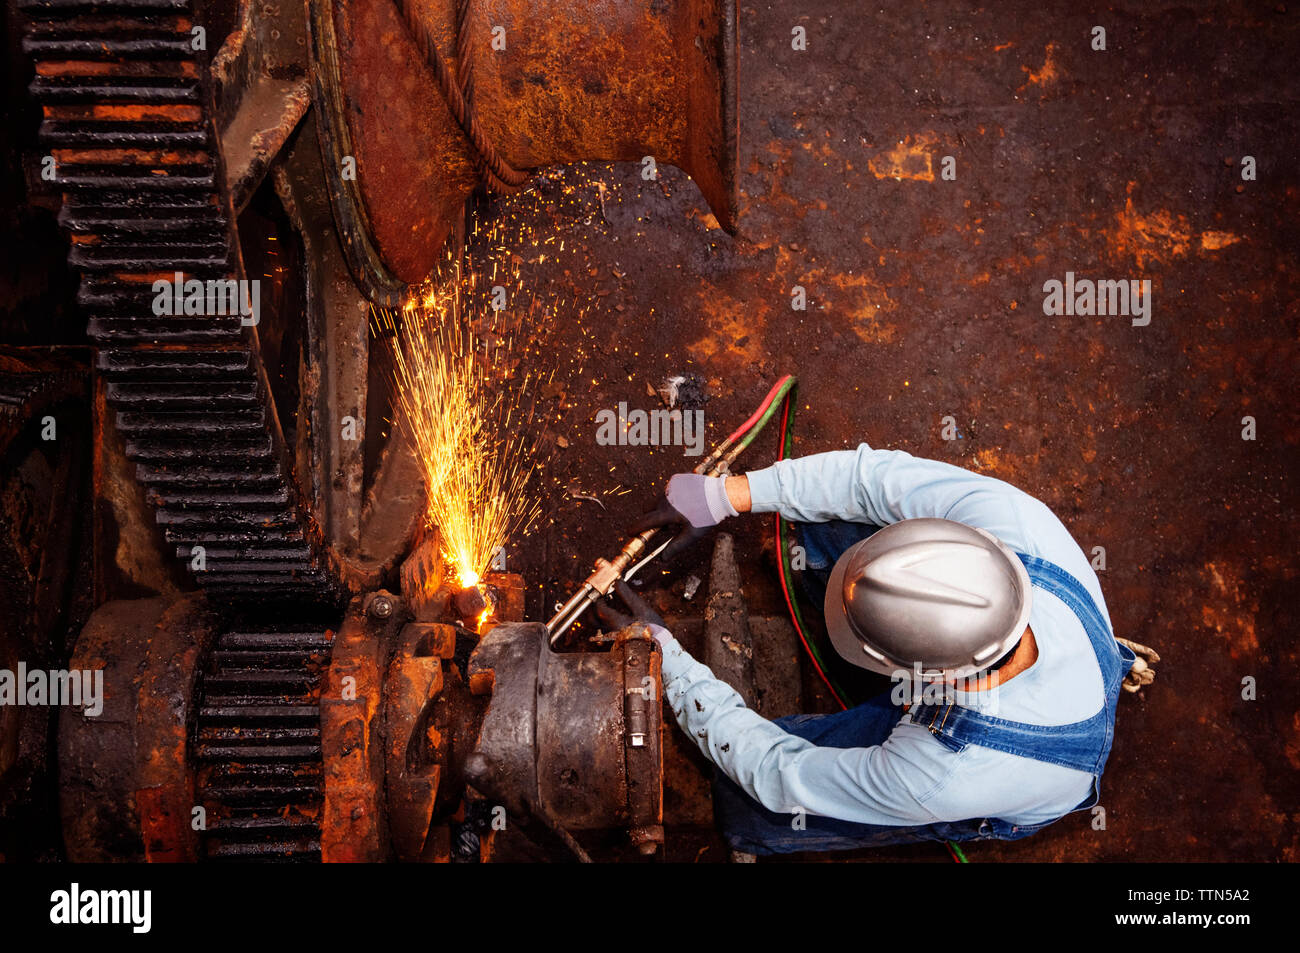 Overhead view of worker welding machinery at industry Stock Photo